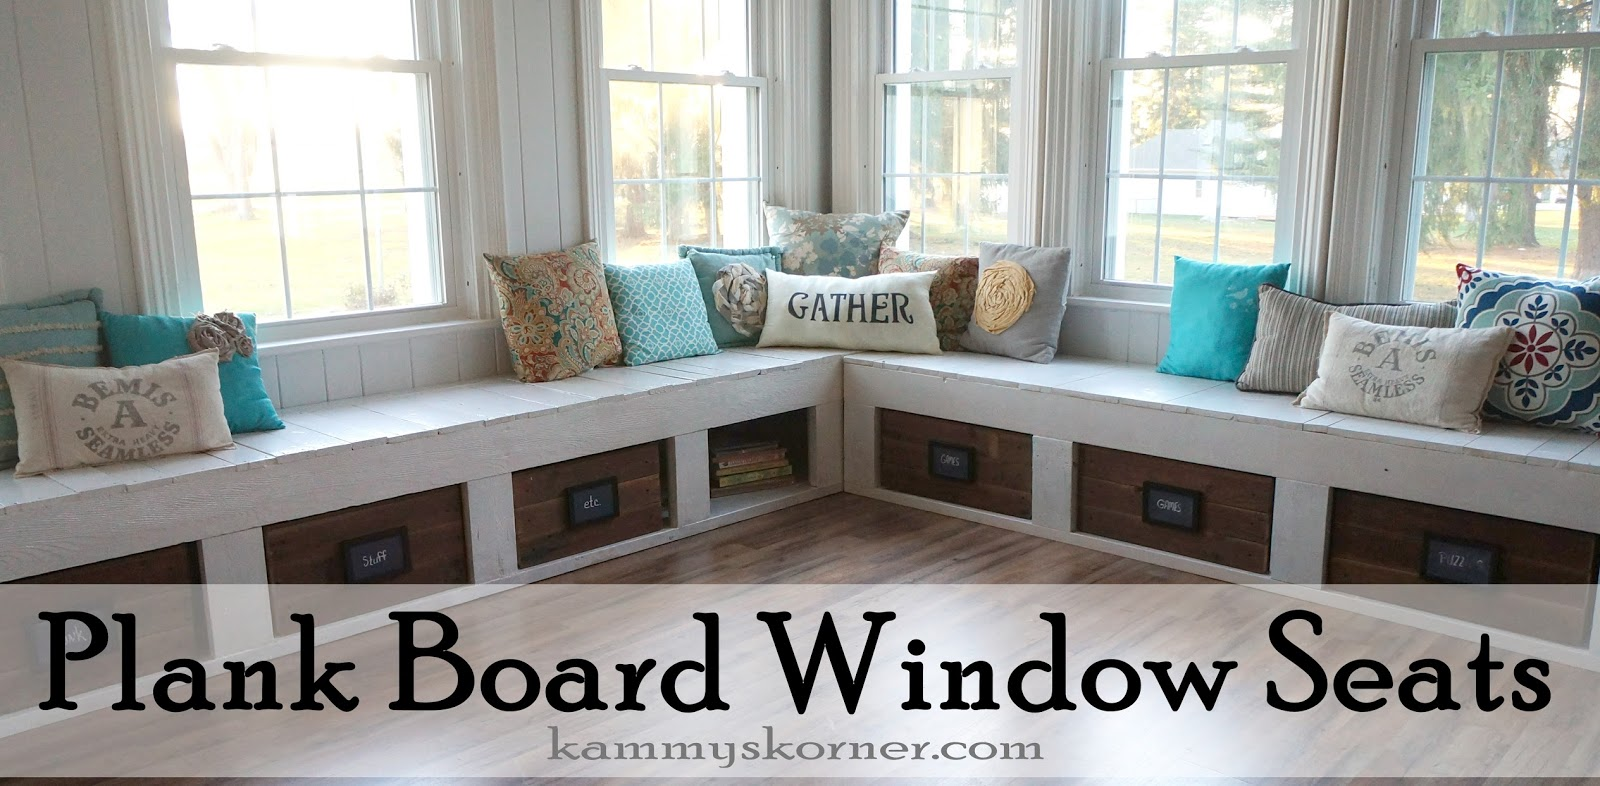 Pictures Of Window Seats kammy's korner: one of a kind window seats from a planked wood walkway